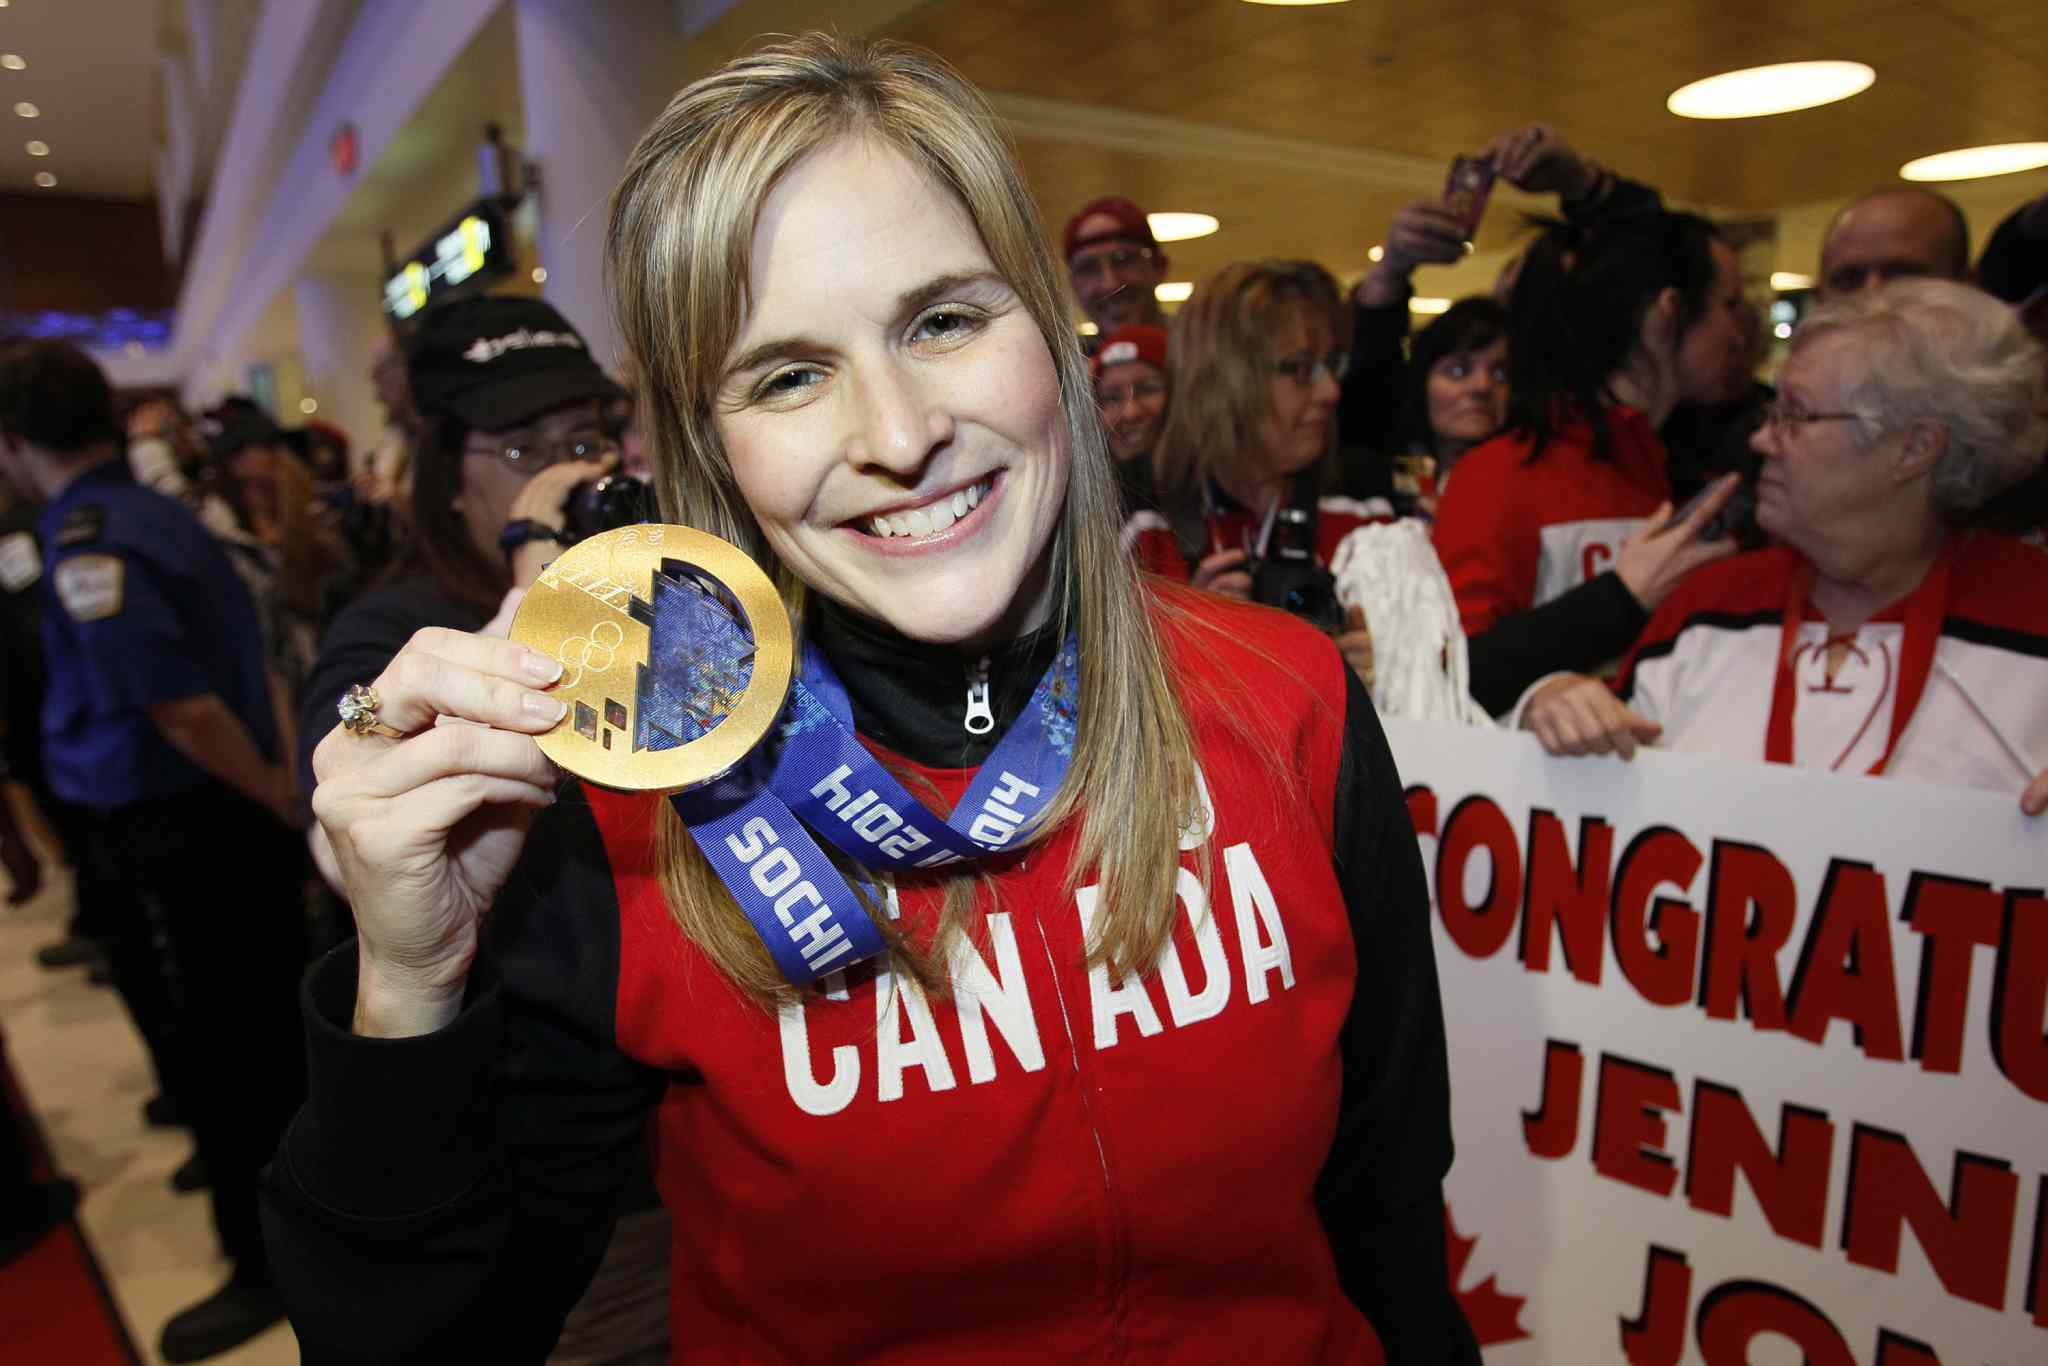 Jennifer Jones was all smiles as she held up her gold medal.